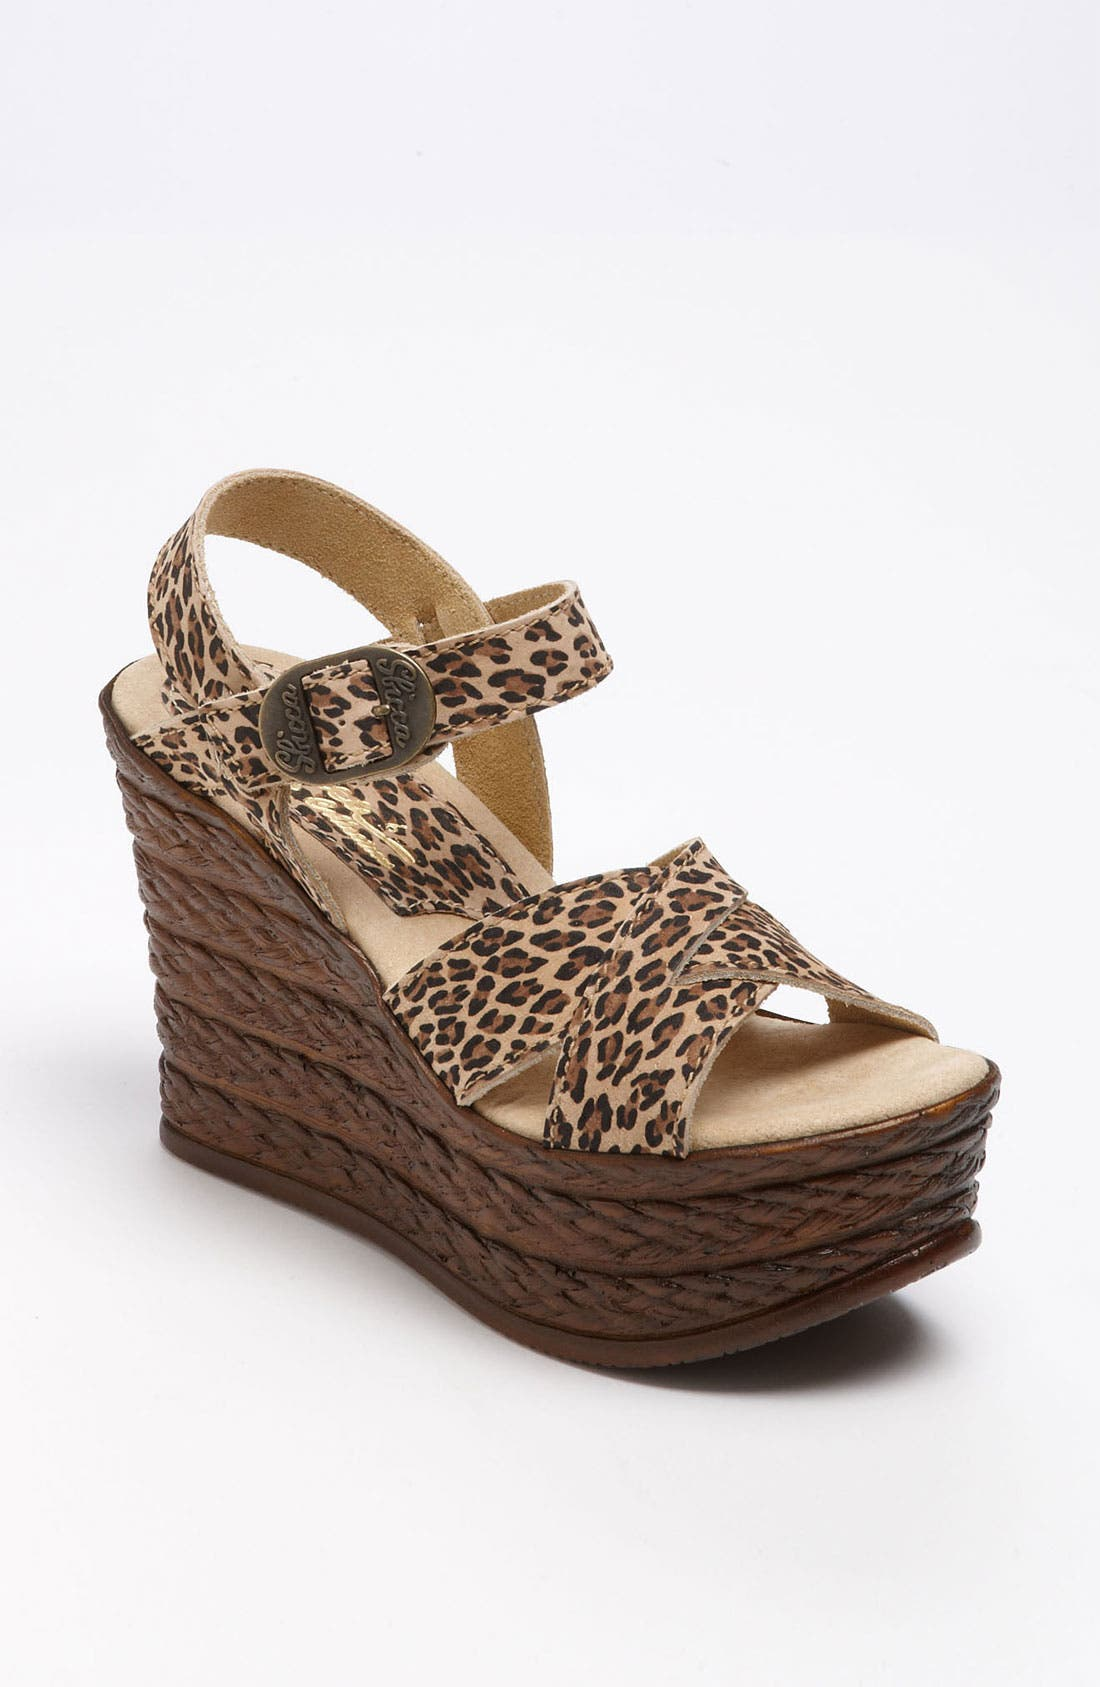 Main Image - Sbicca 'Lizzy' Sandal